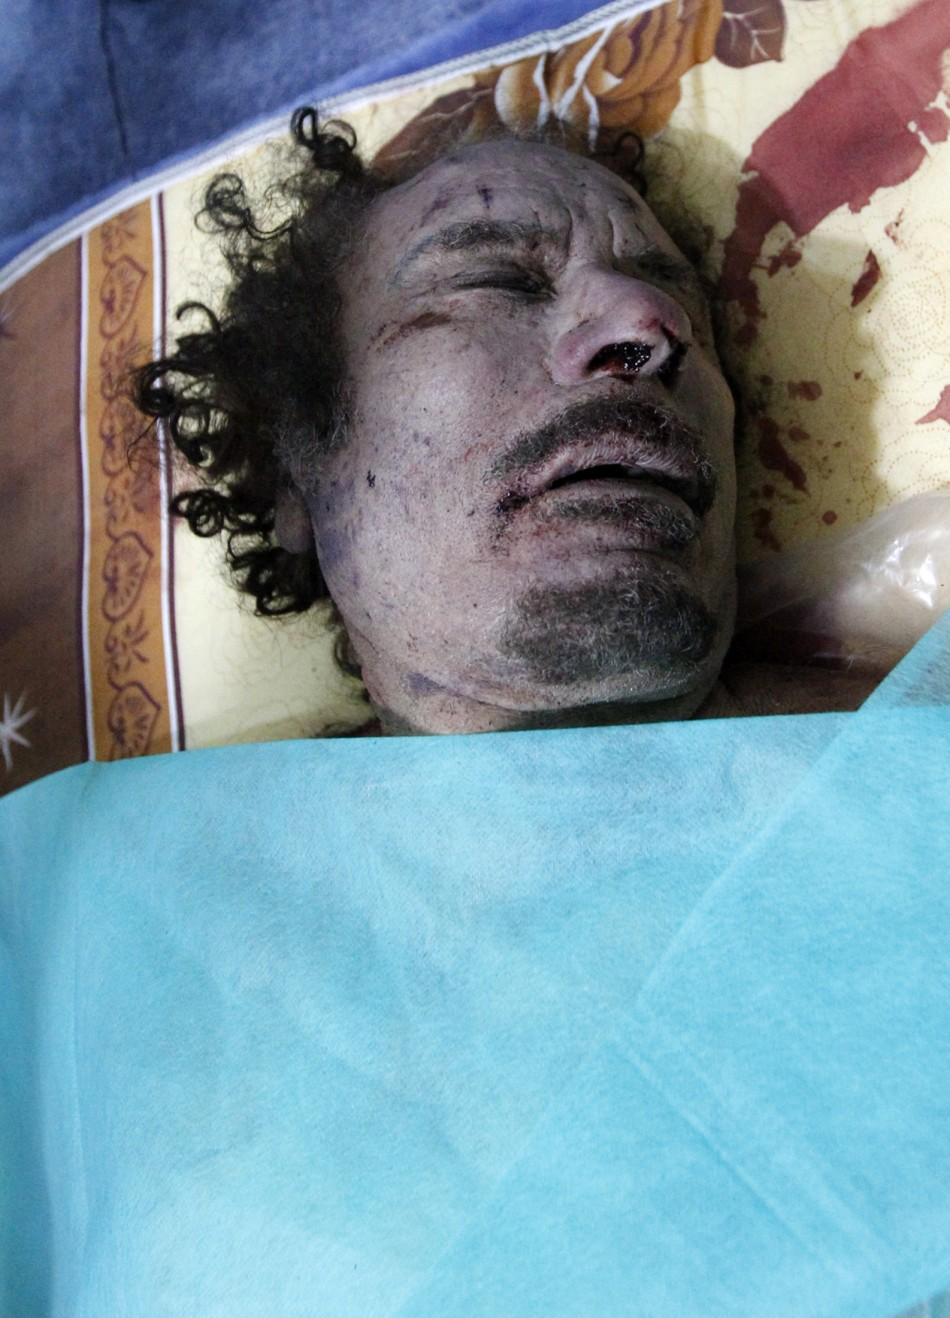 Muammar Gaddafi Killed: Dead Body Photos Released